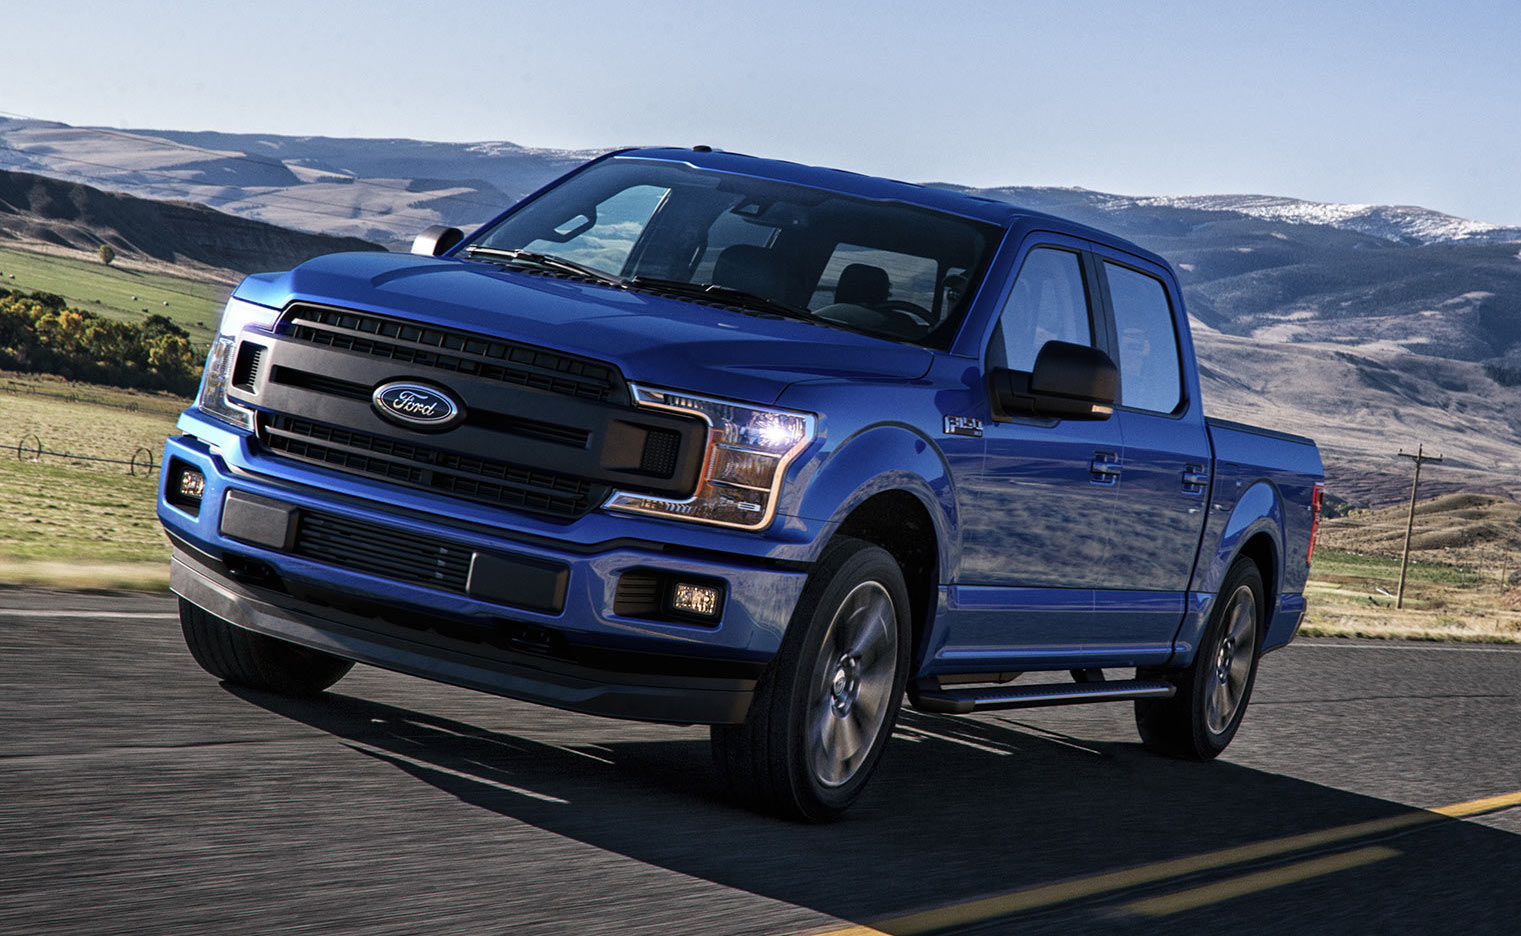 ford details f 150 redesign 2018 refresh features super duty styling customer feedback. Black Bedroom Furniture Sets. Home Design Ideas